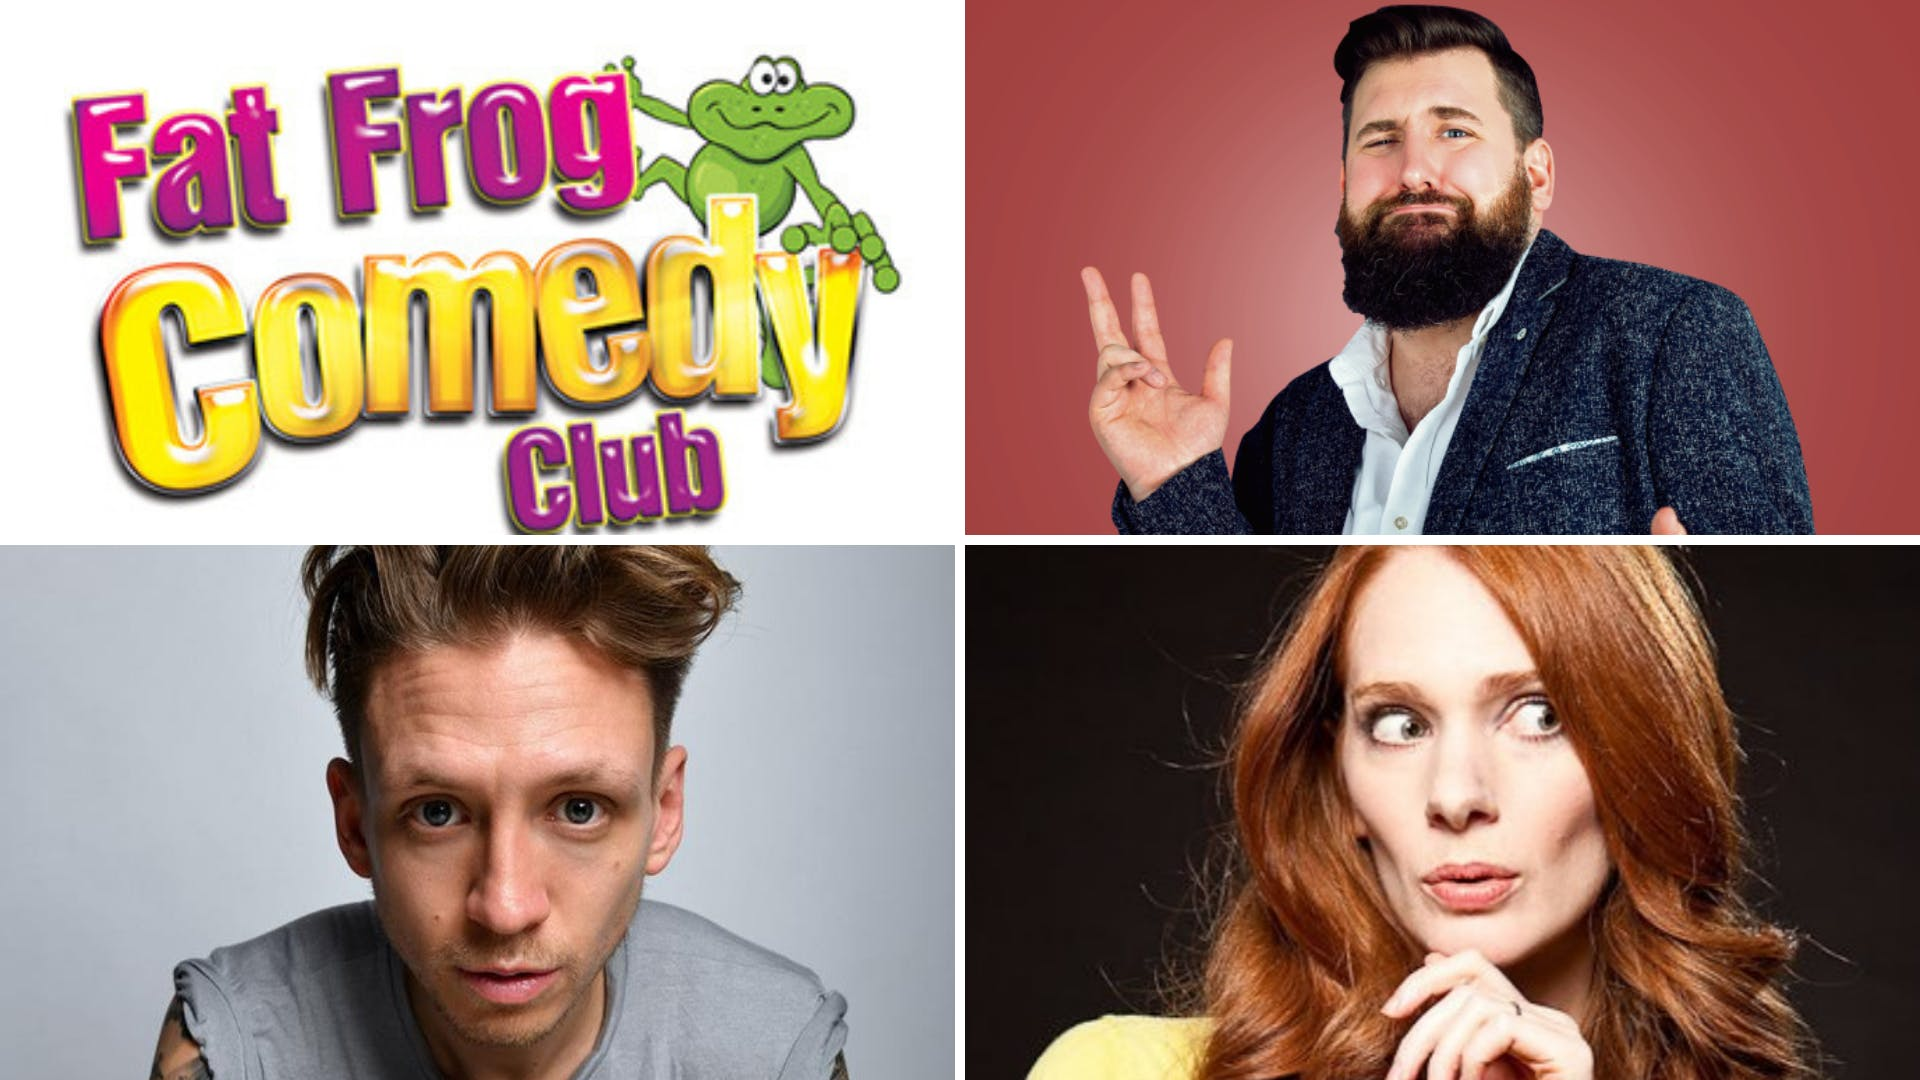 Fat Frog Comedy with Garrett Millerick and Alistair Williams